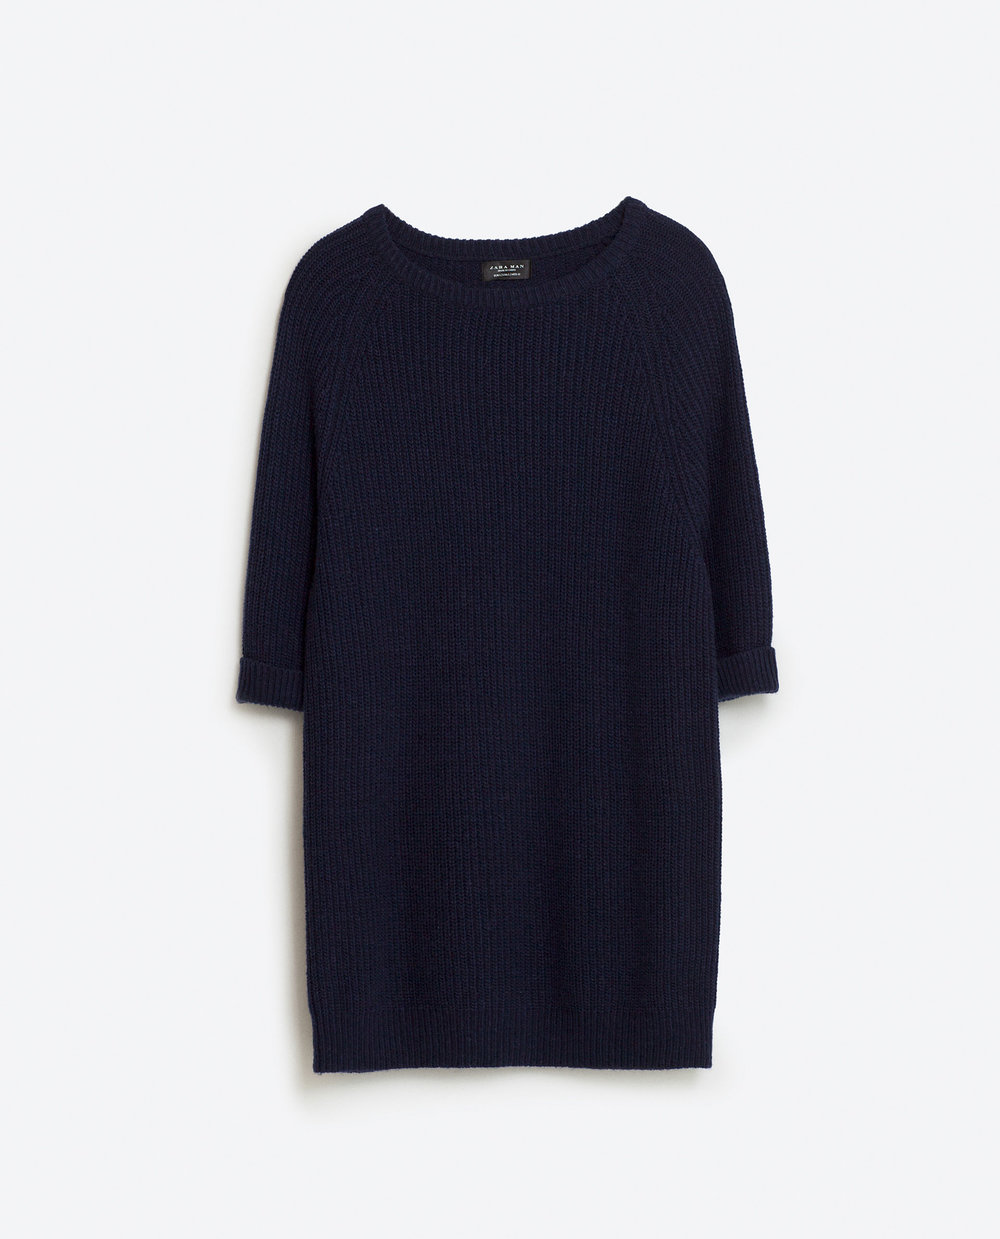 Short-sleeve sweater, £25.99 (zara.com)